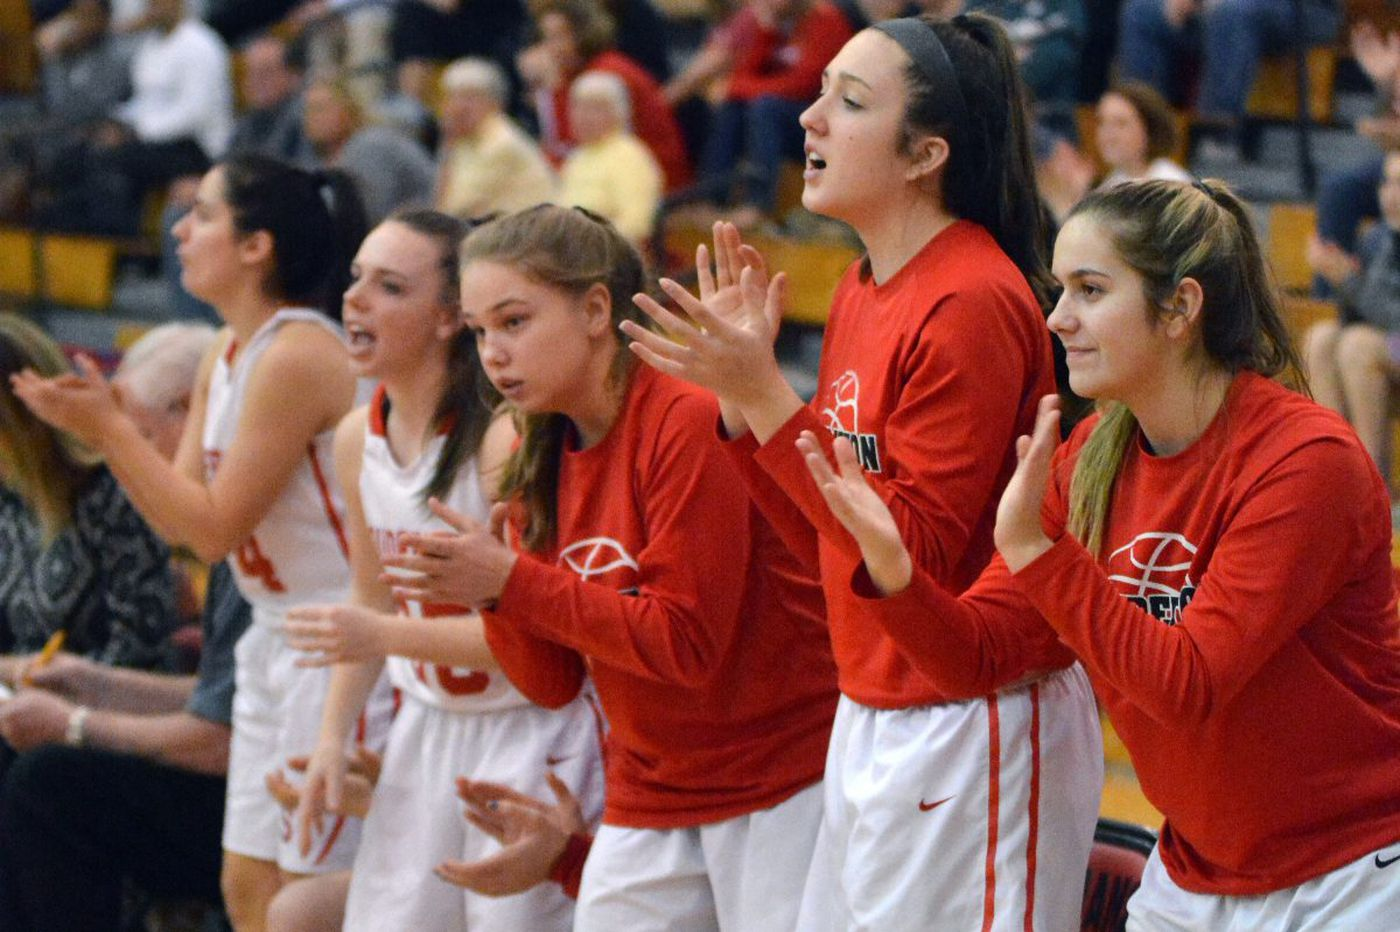 Tuesday's Pa. roundup: Souderton girls beat Easton to reach state quarterfinals